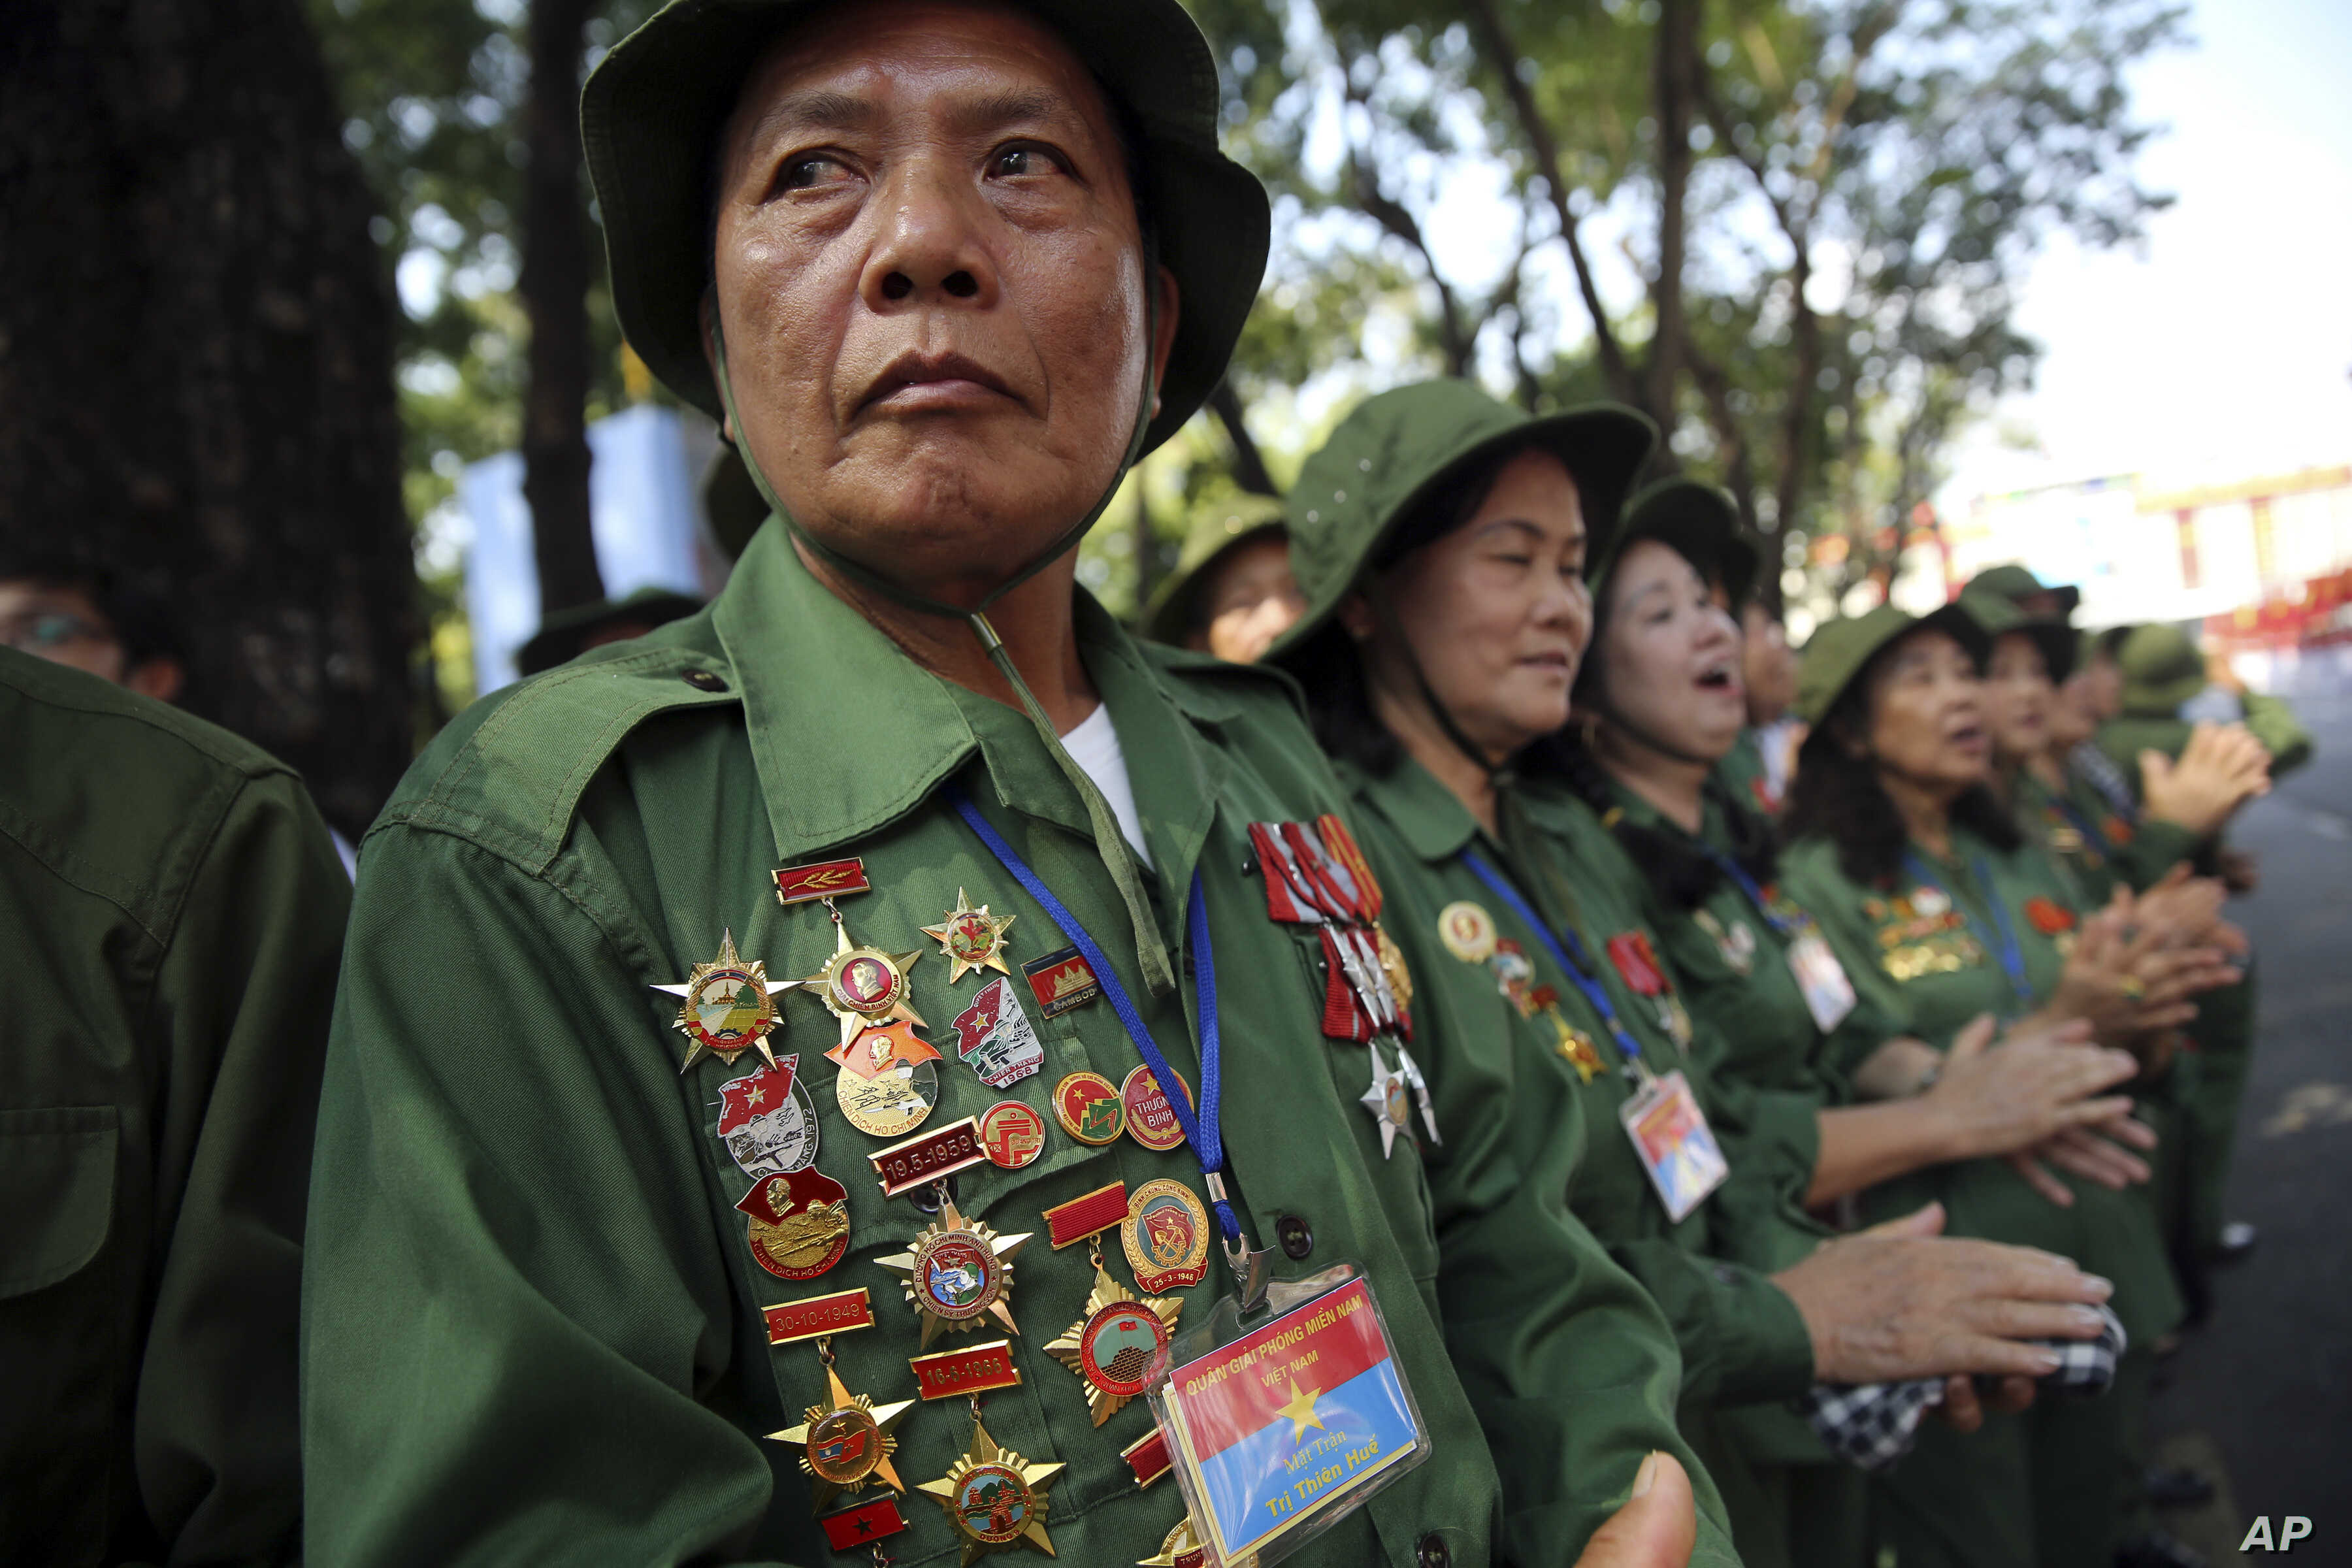 Vietnam Celebrates 40th Anniversary of End of War | Voice of America